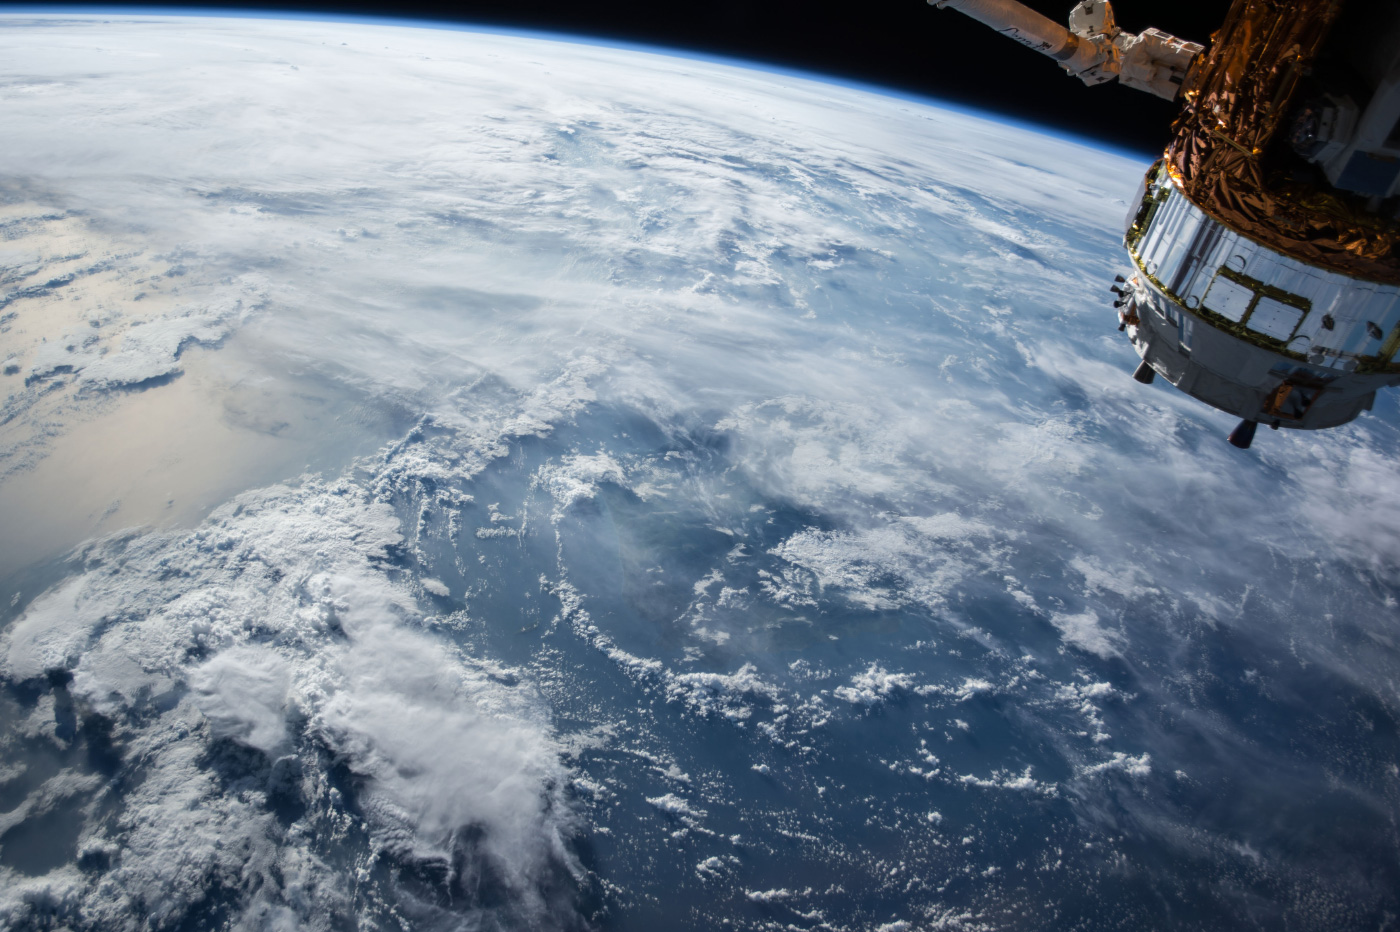 The Earth, as seen from space, with clouds moving across the surface